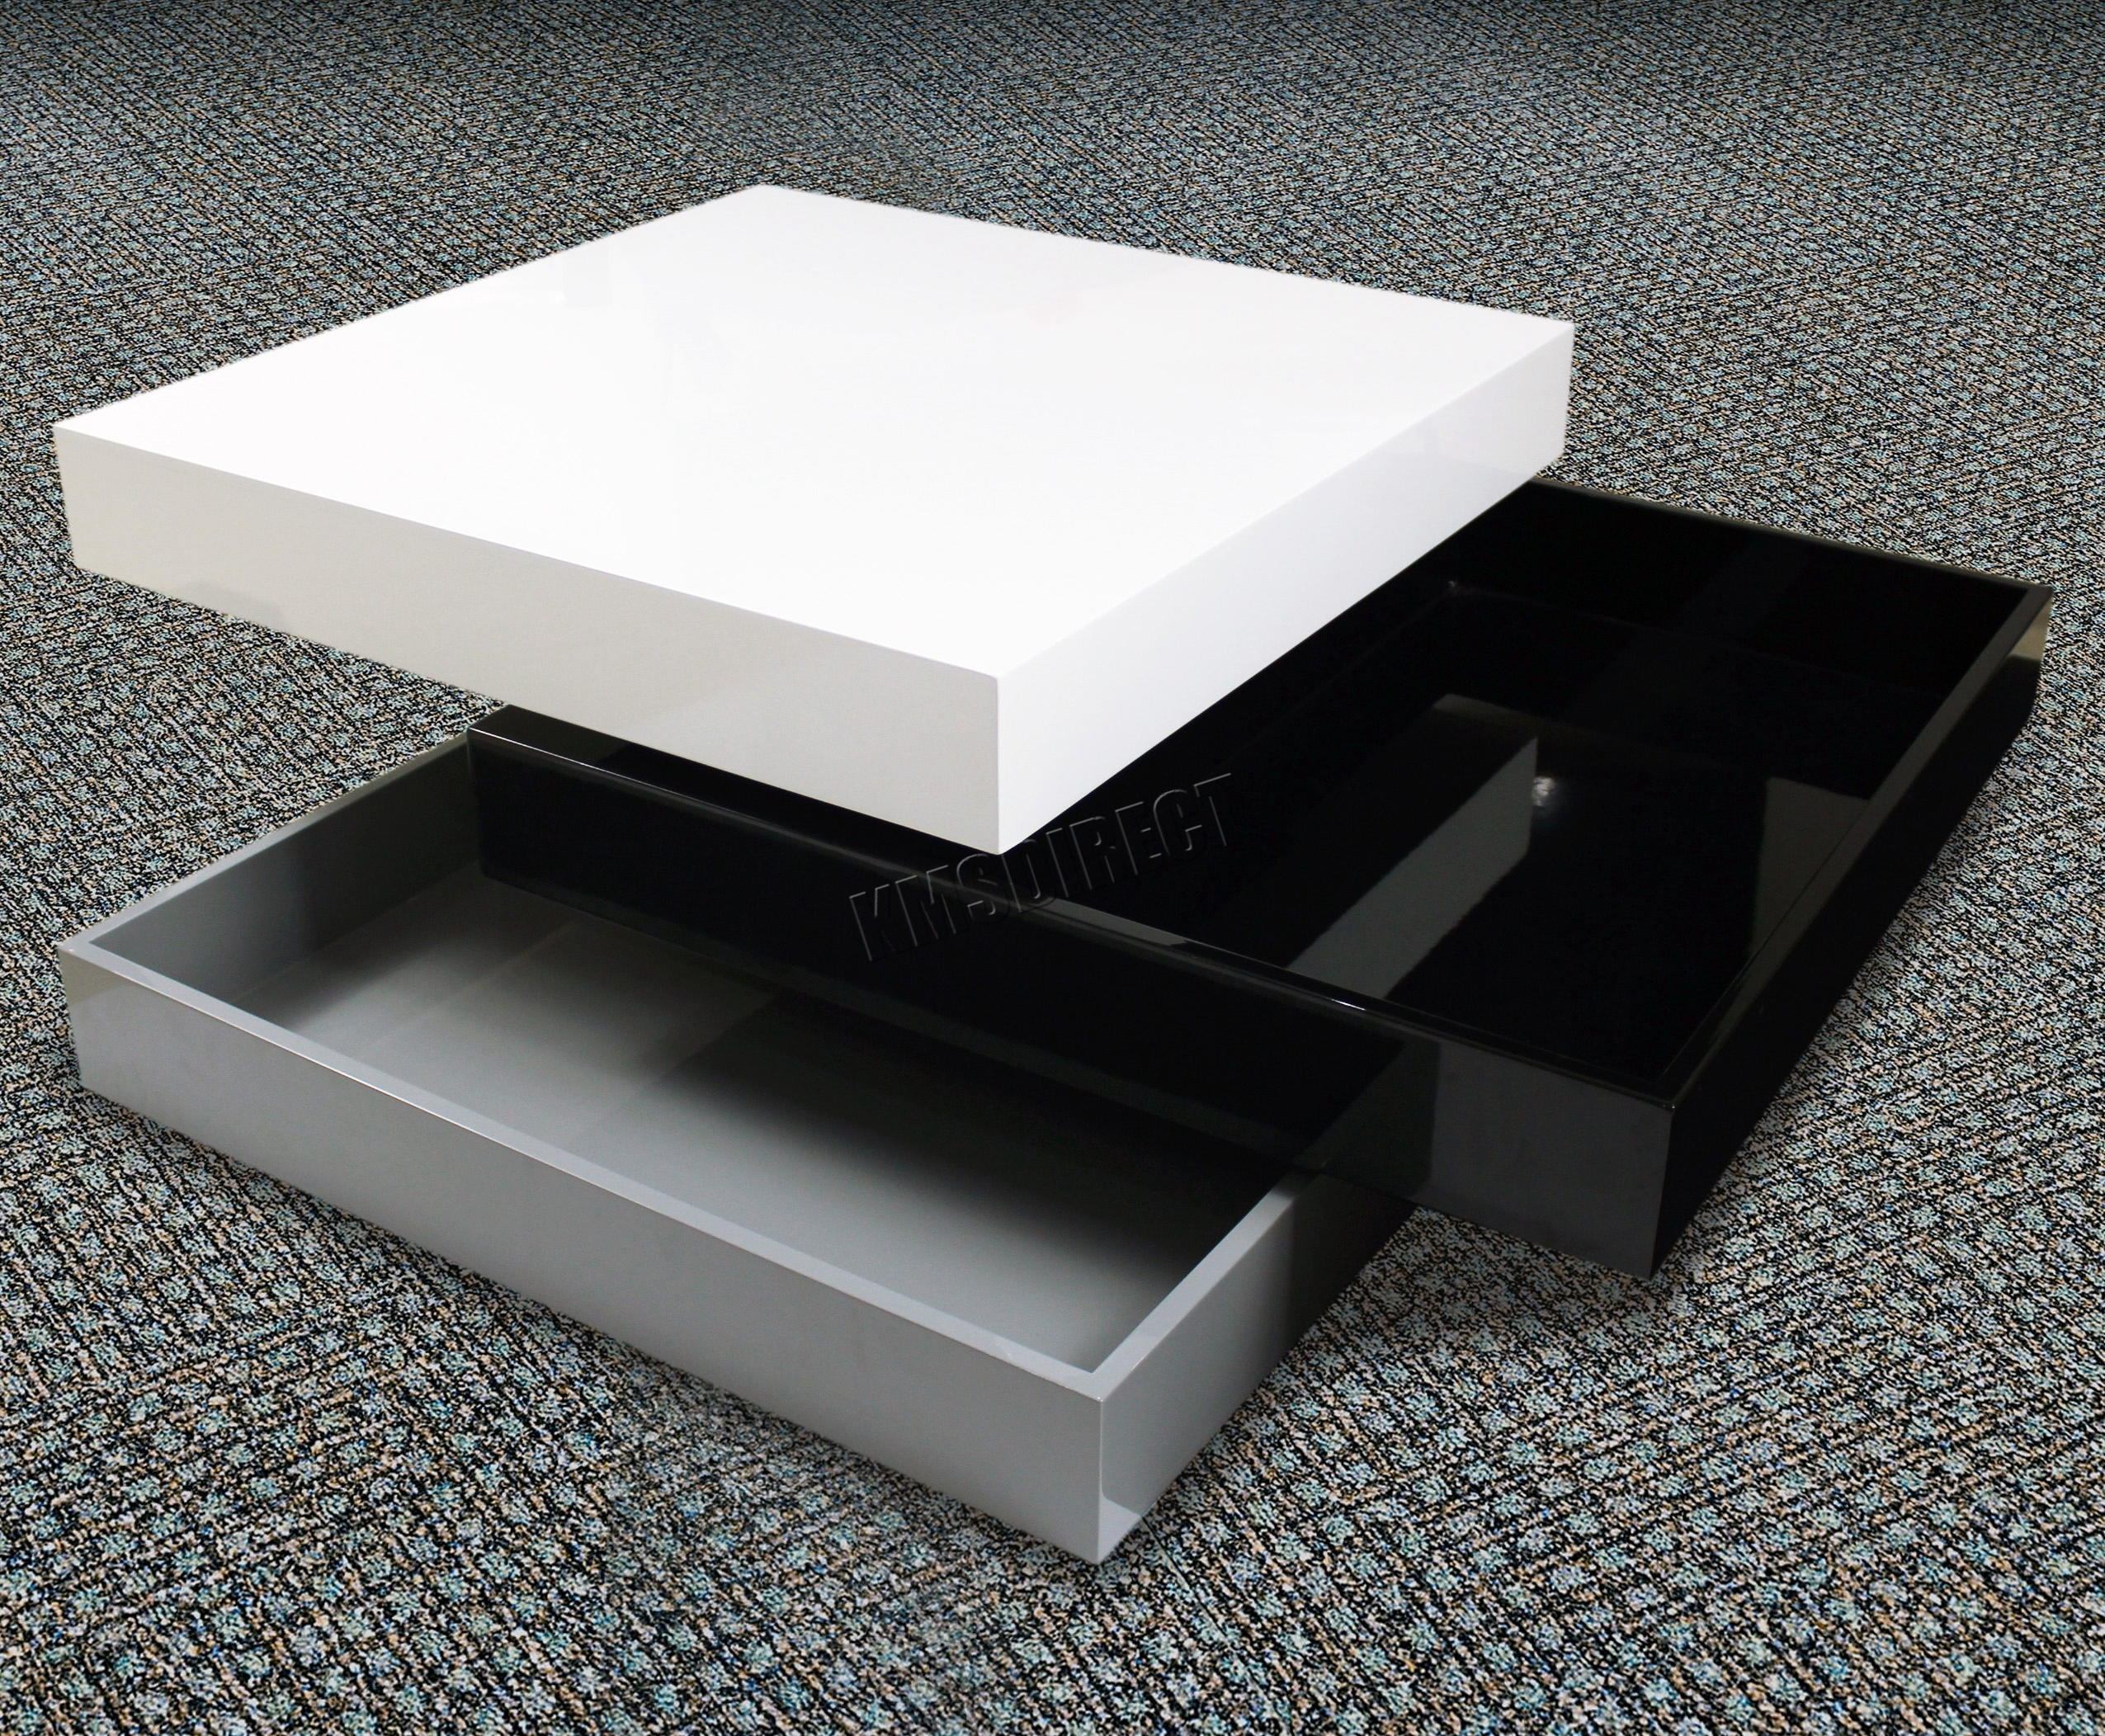 Sentinel Foxhunter Coffee Table 3 Layers Square High Gloss Mdf Ct03 Black Grey White New